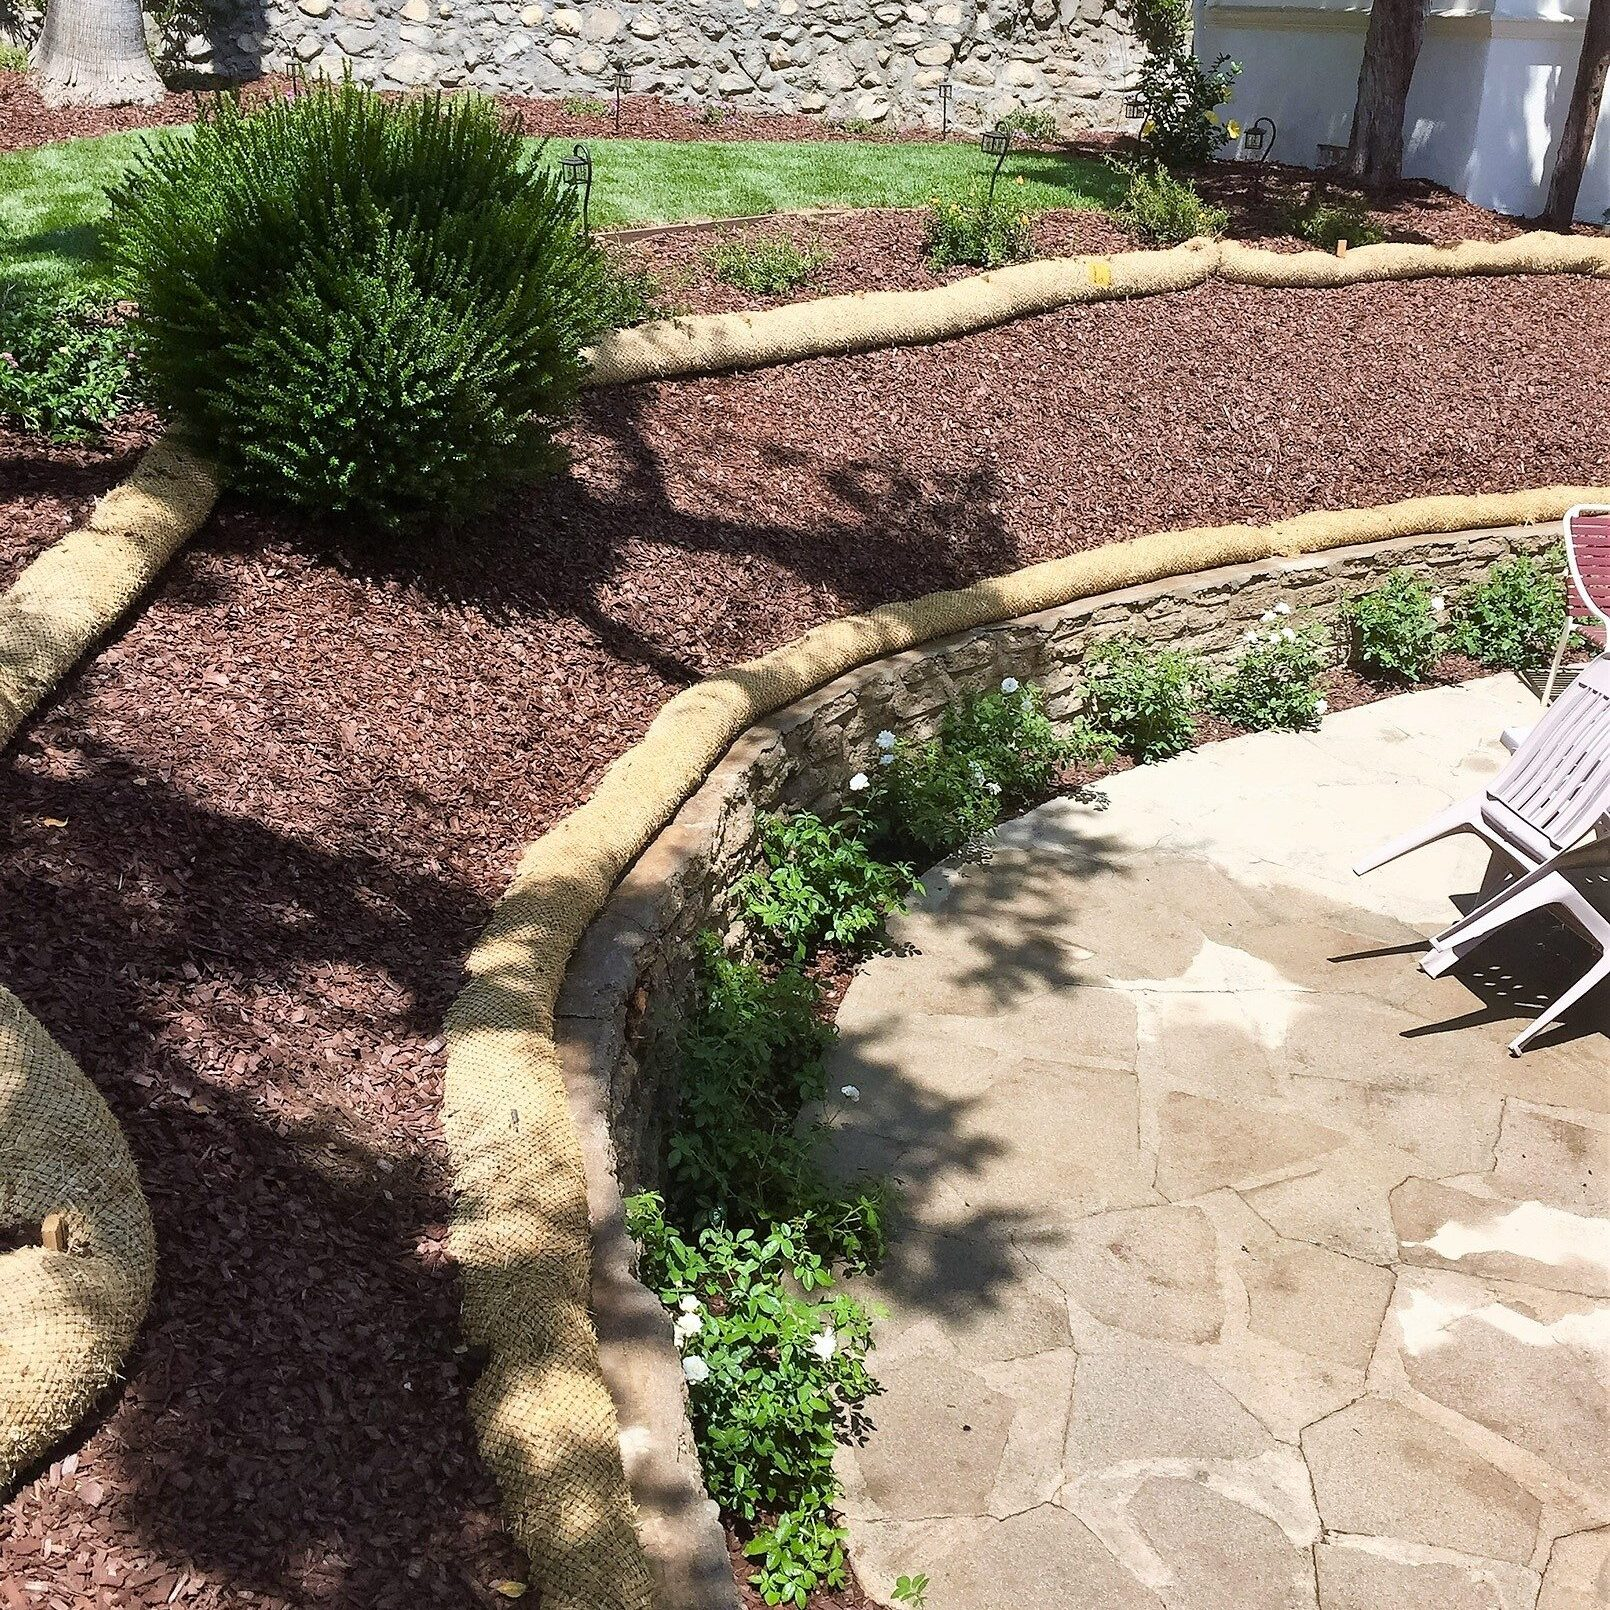 Ed's Landscaping Patio and Garden planter